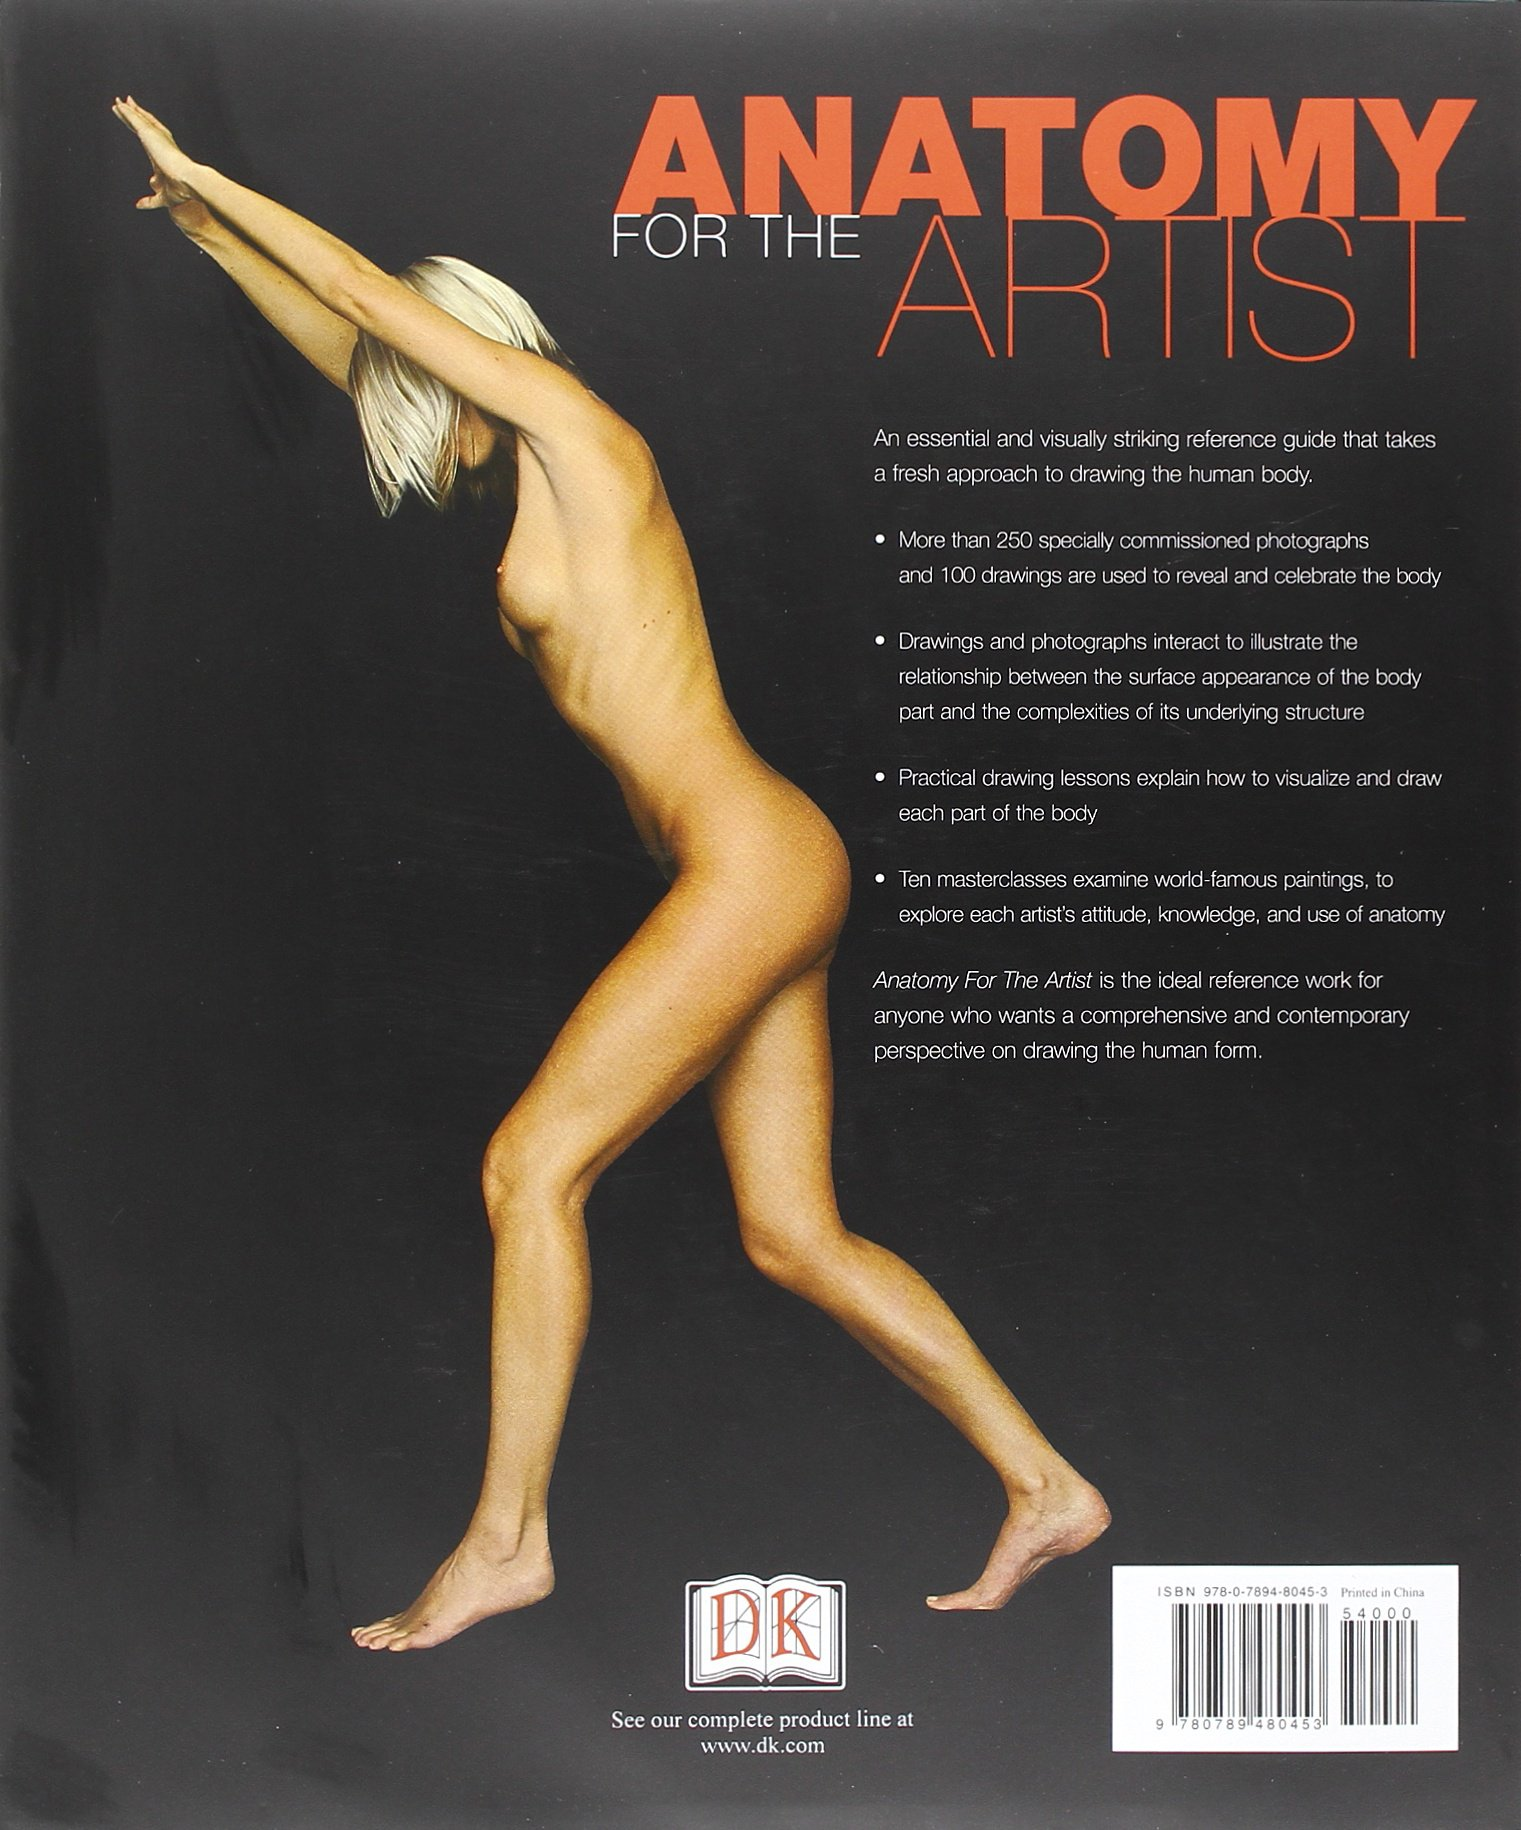 Anatomy for the Artist: Amazon.de: Sarah Simblet: Fremdsprachige Bücher